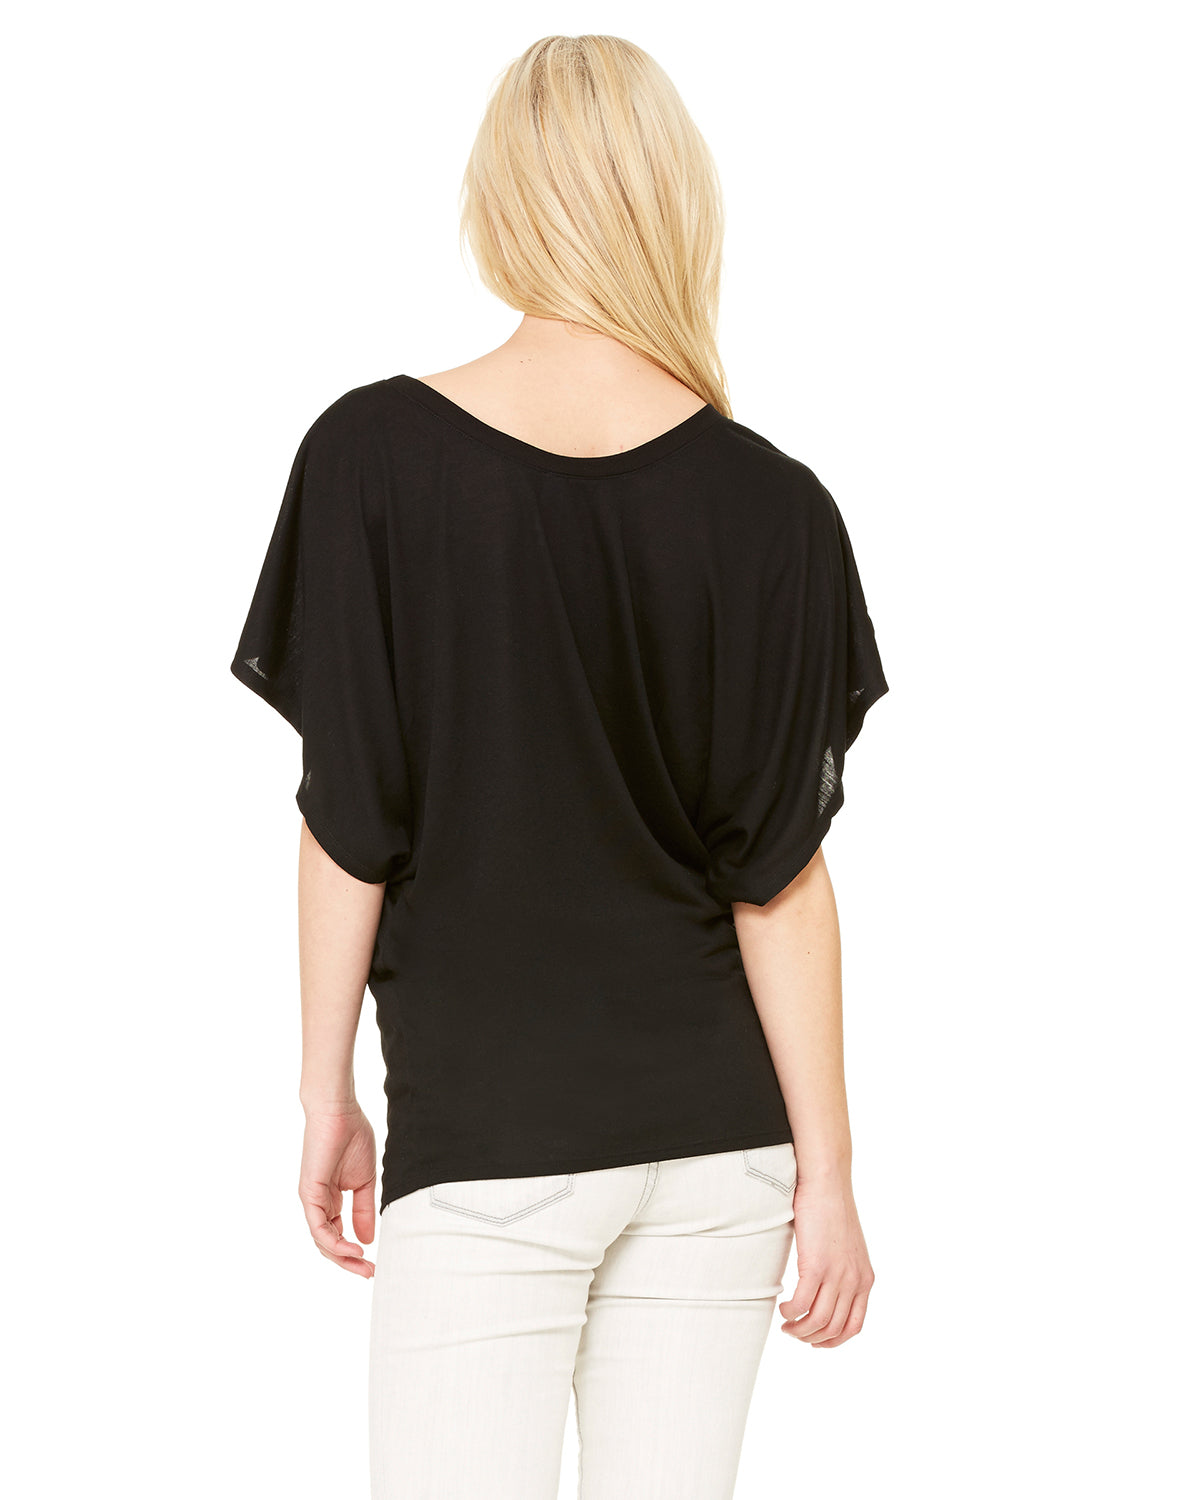 Sympathy Draped Sleeve Dolman Shirt